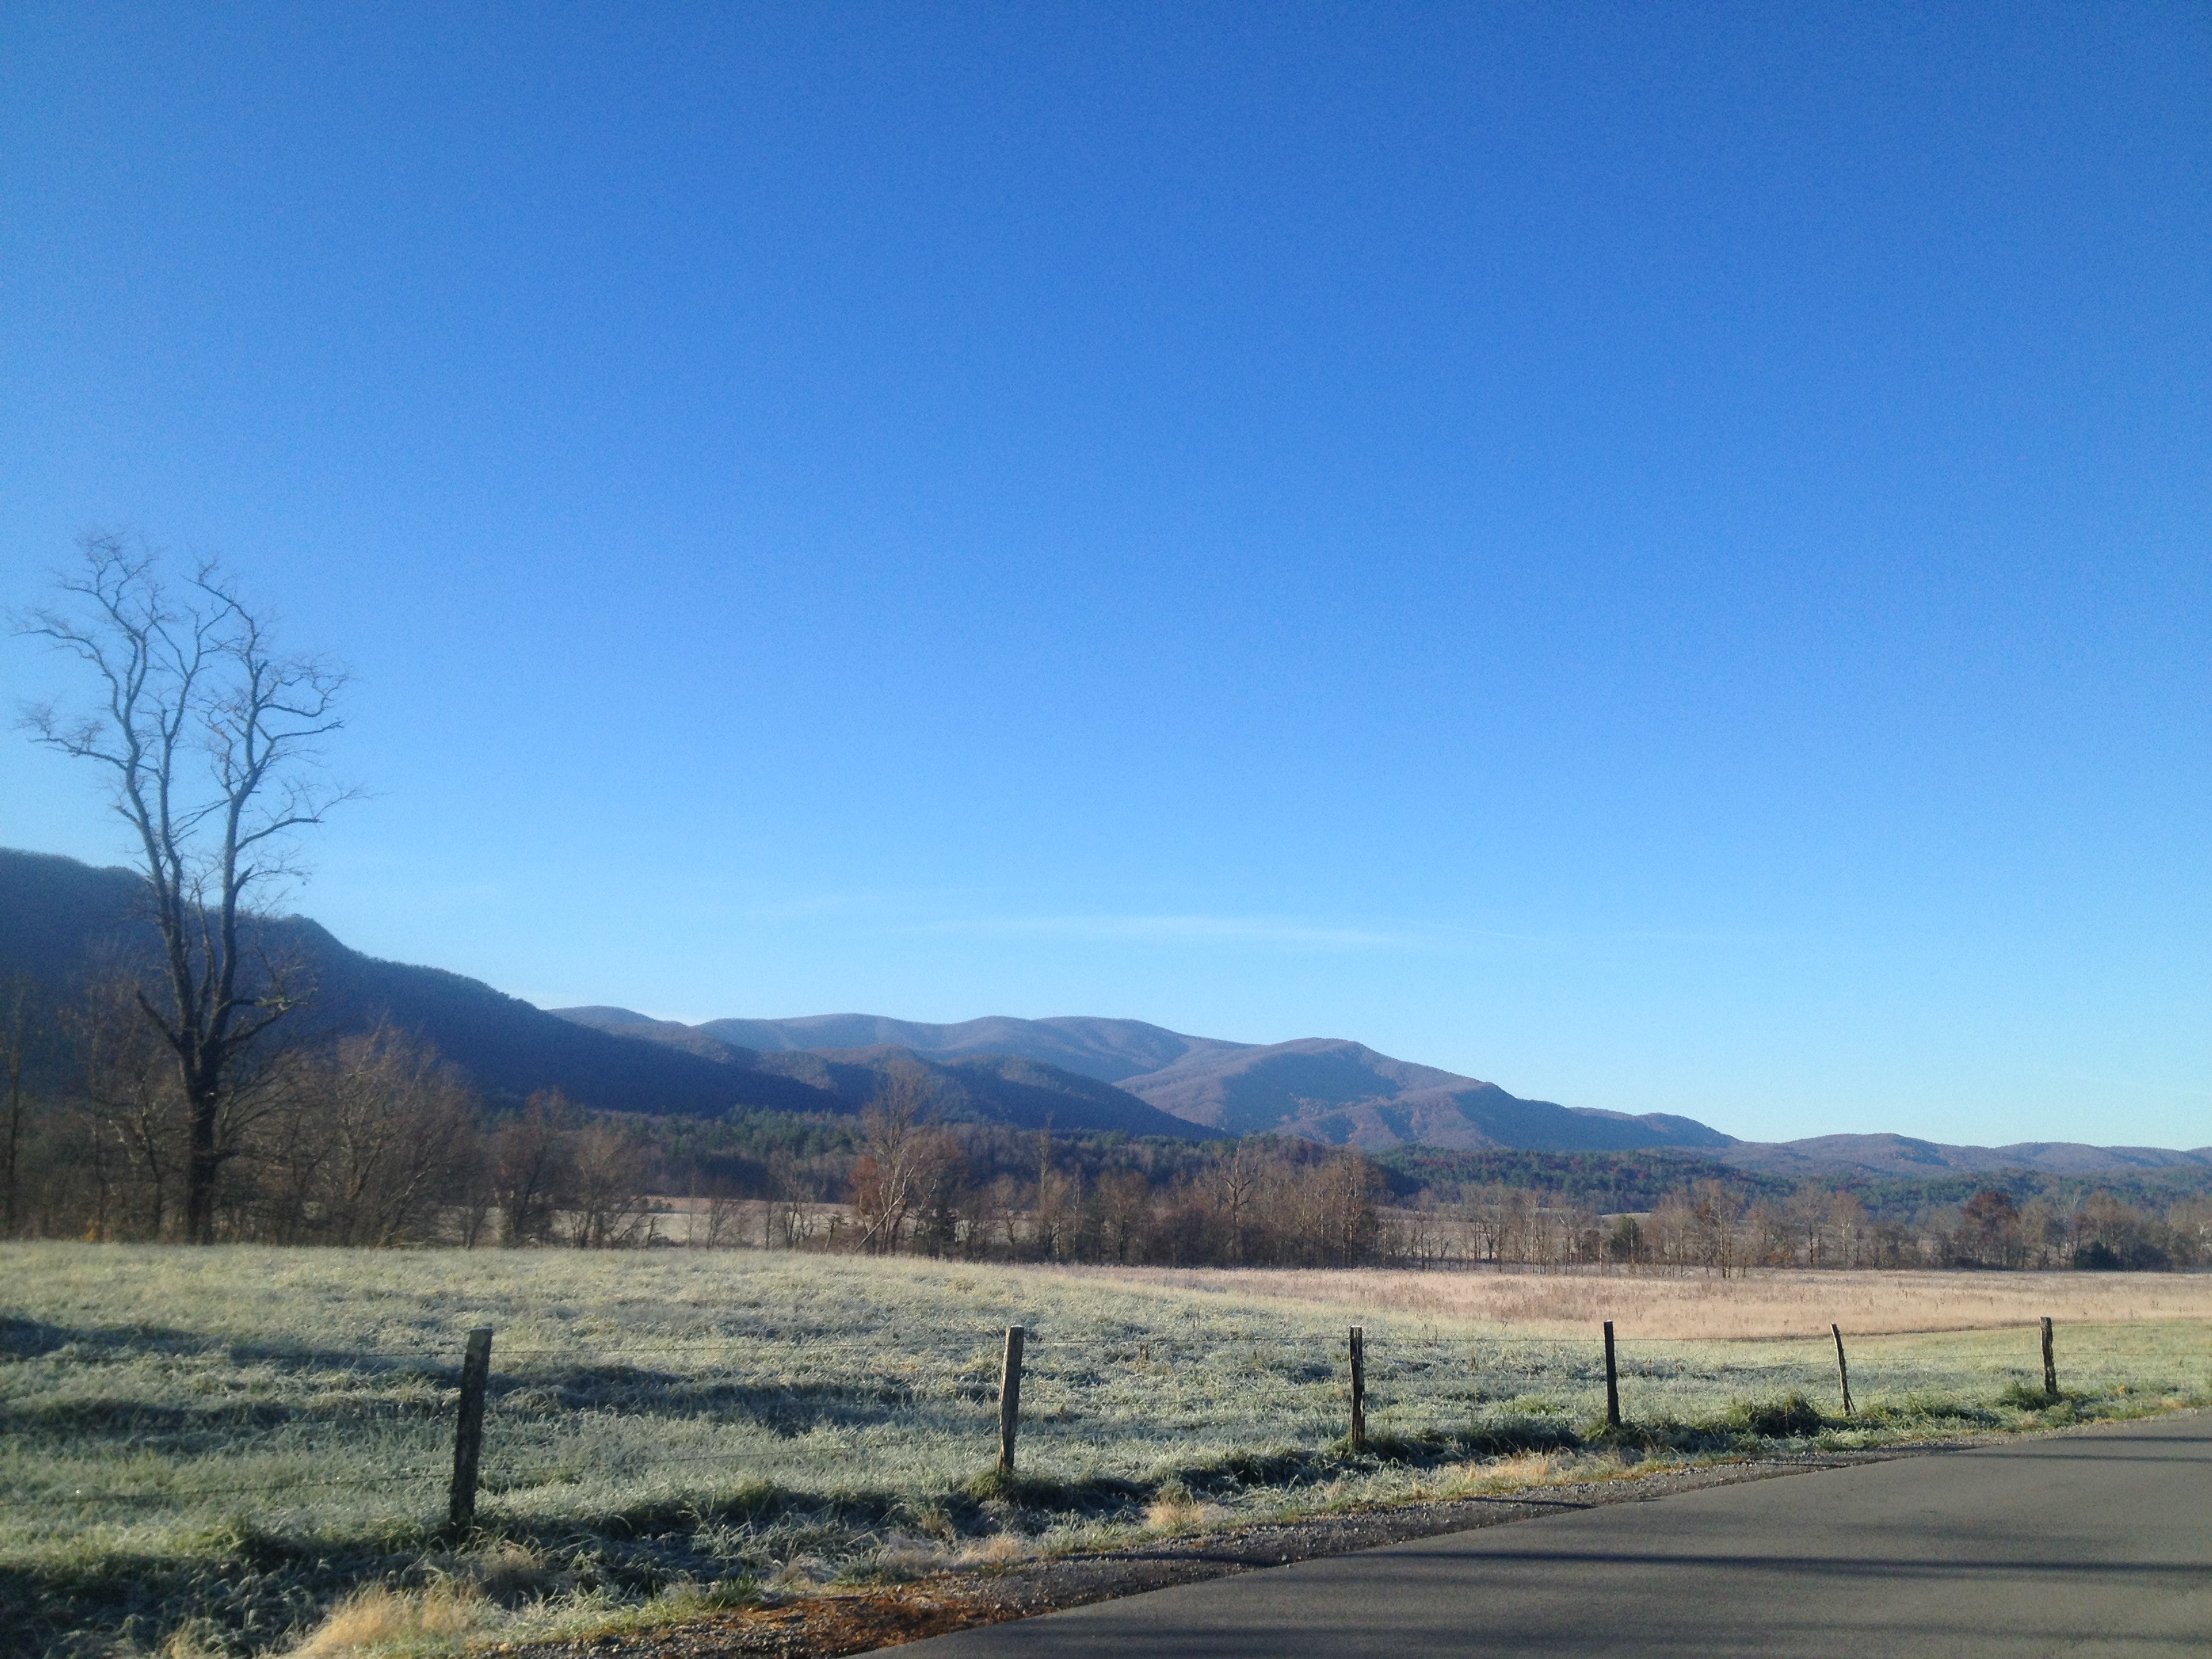 Cades Cove view of Gregory Bald